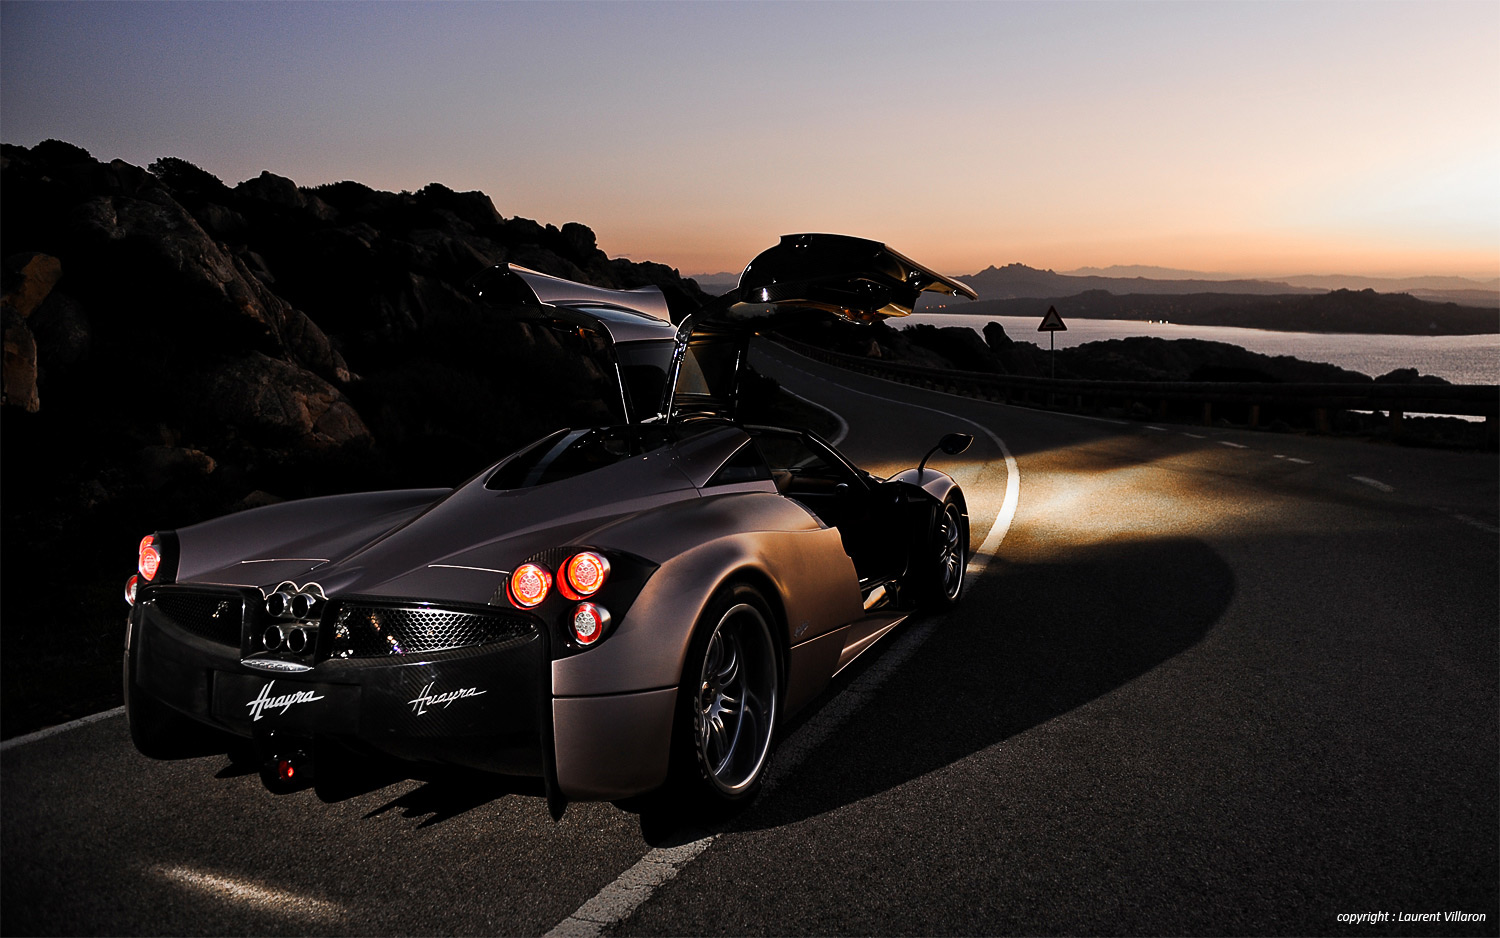 50 Super Sports Car Wallpapers That'll Blow Your Desktop Away |Car Wallpapers For Desktop 2012